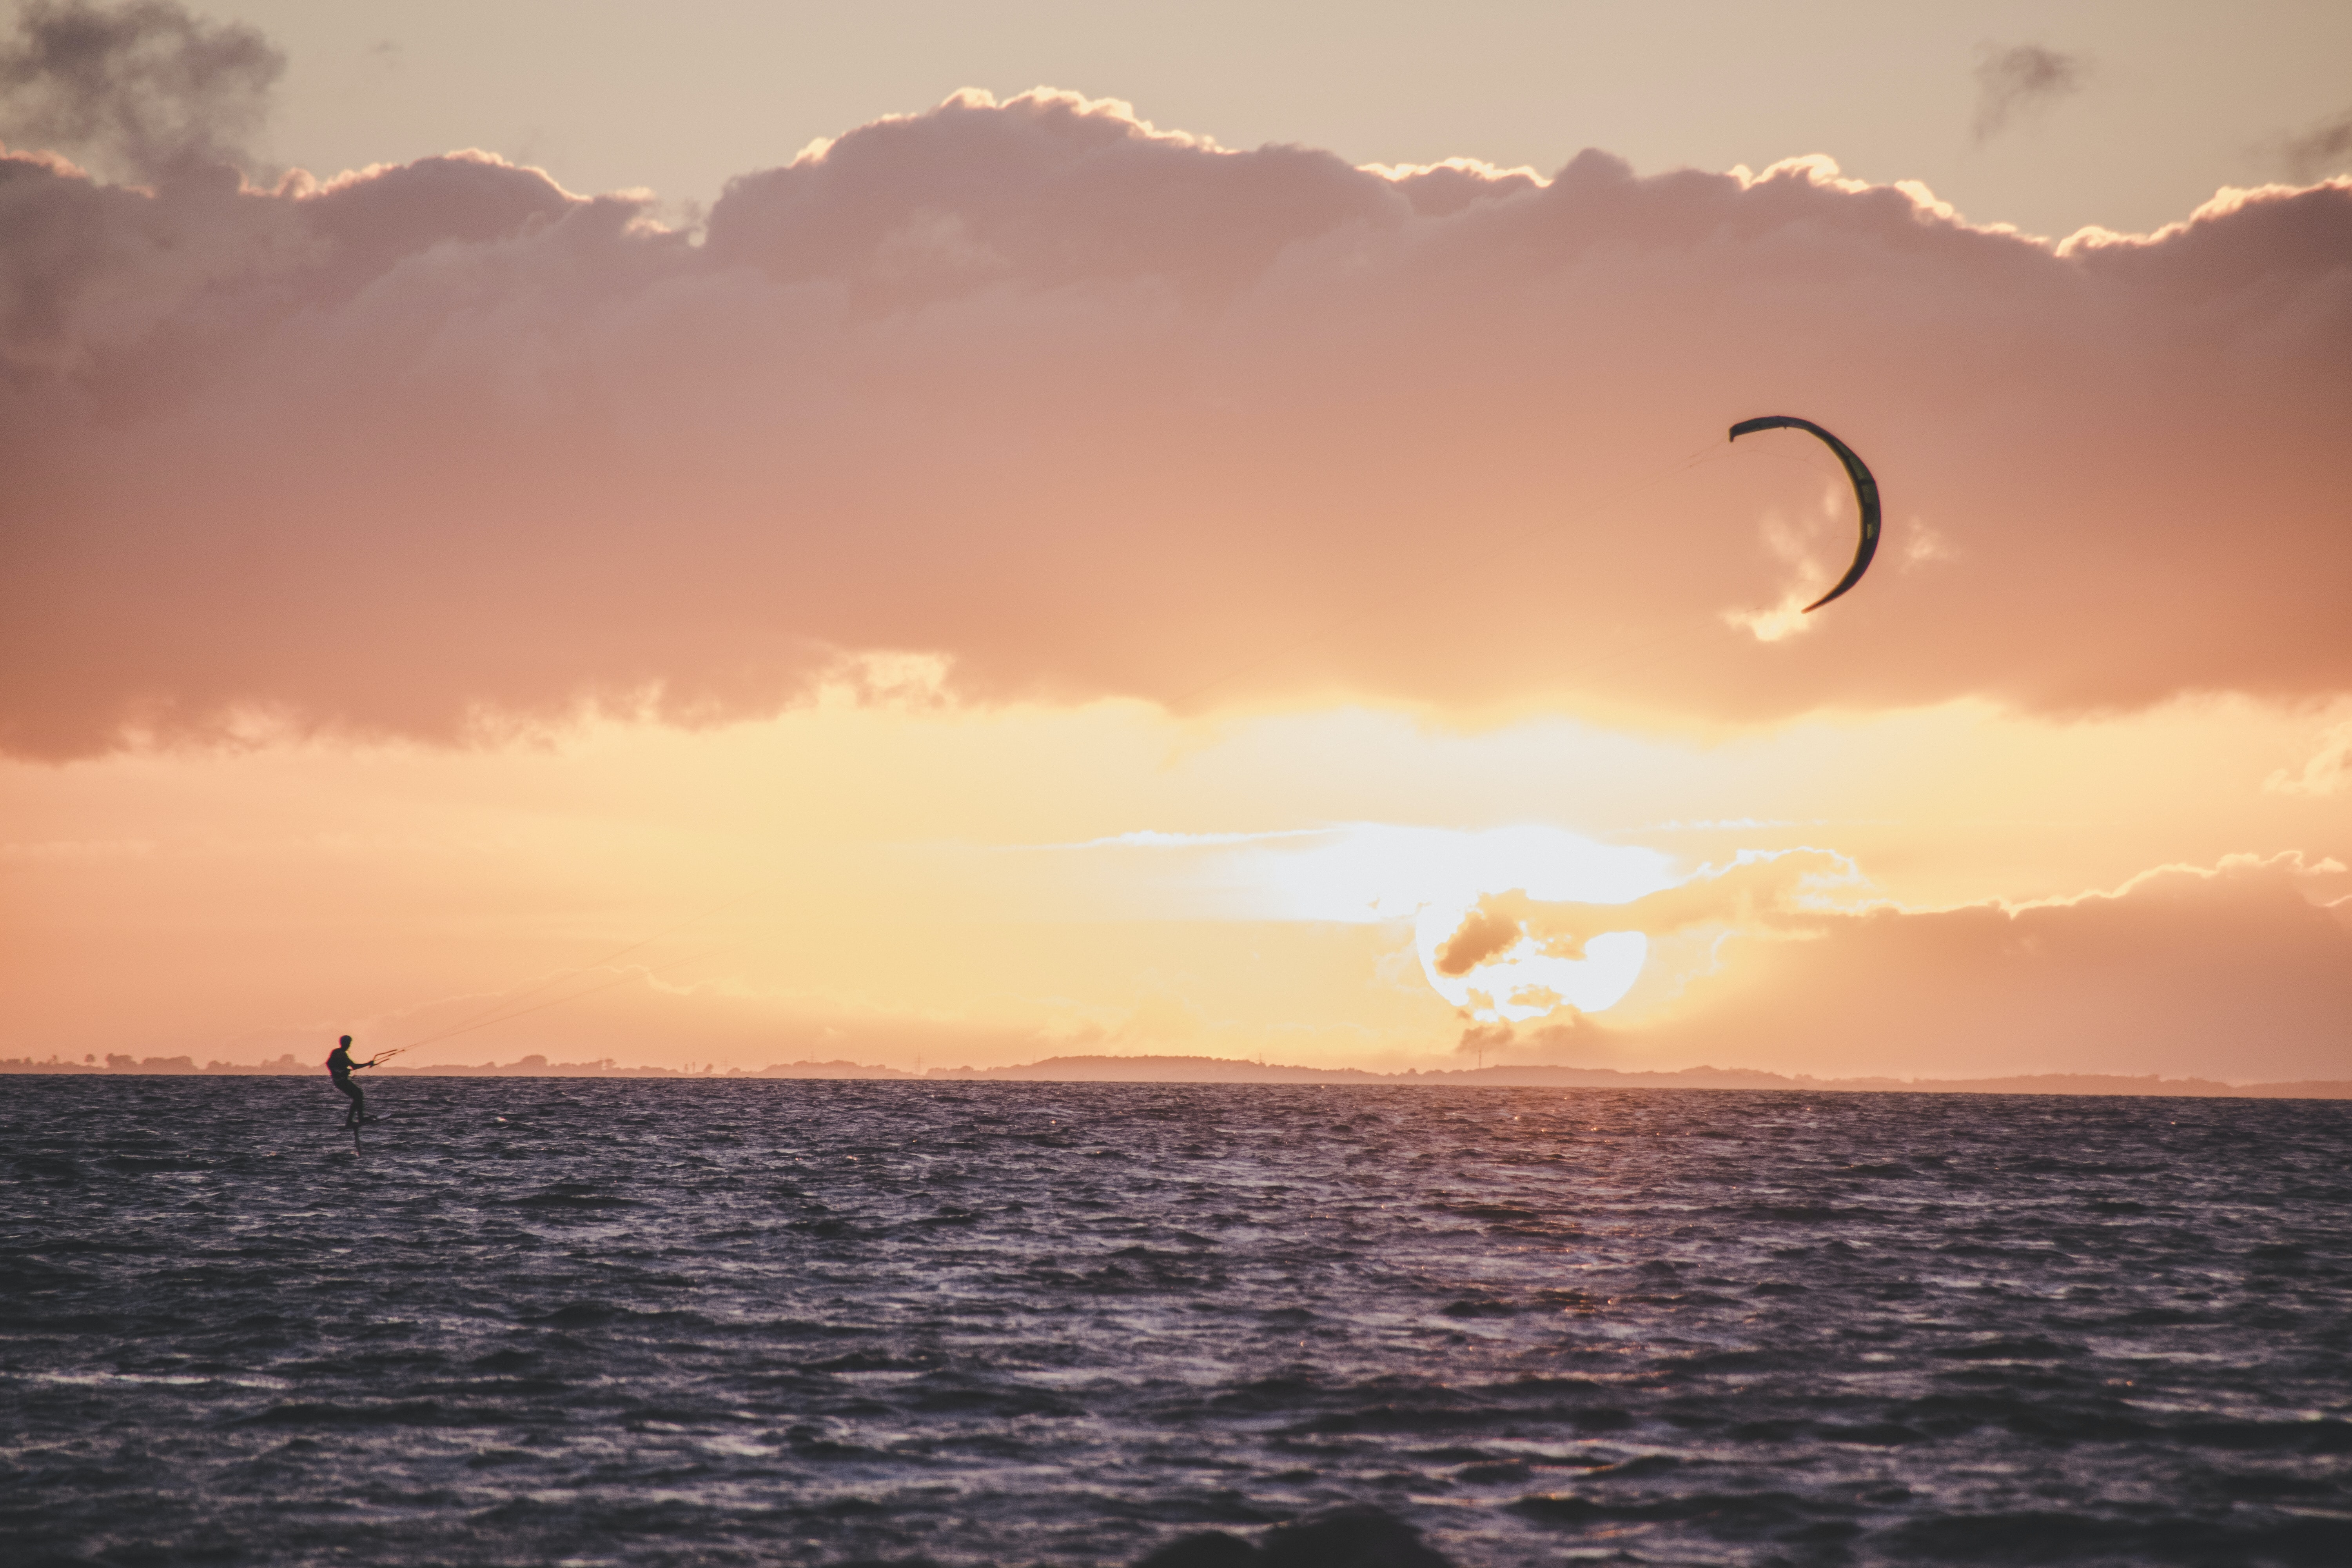 person in water ski on body of water during sunset